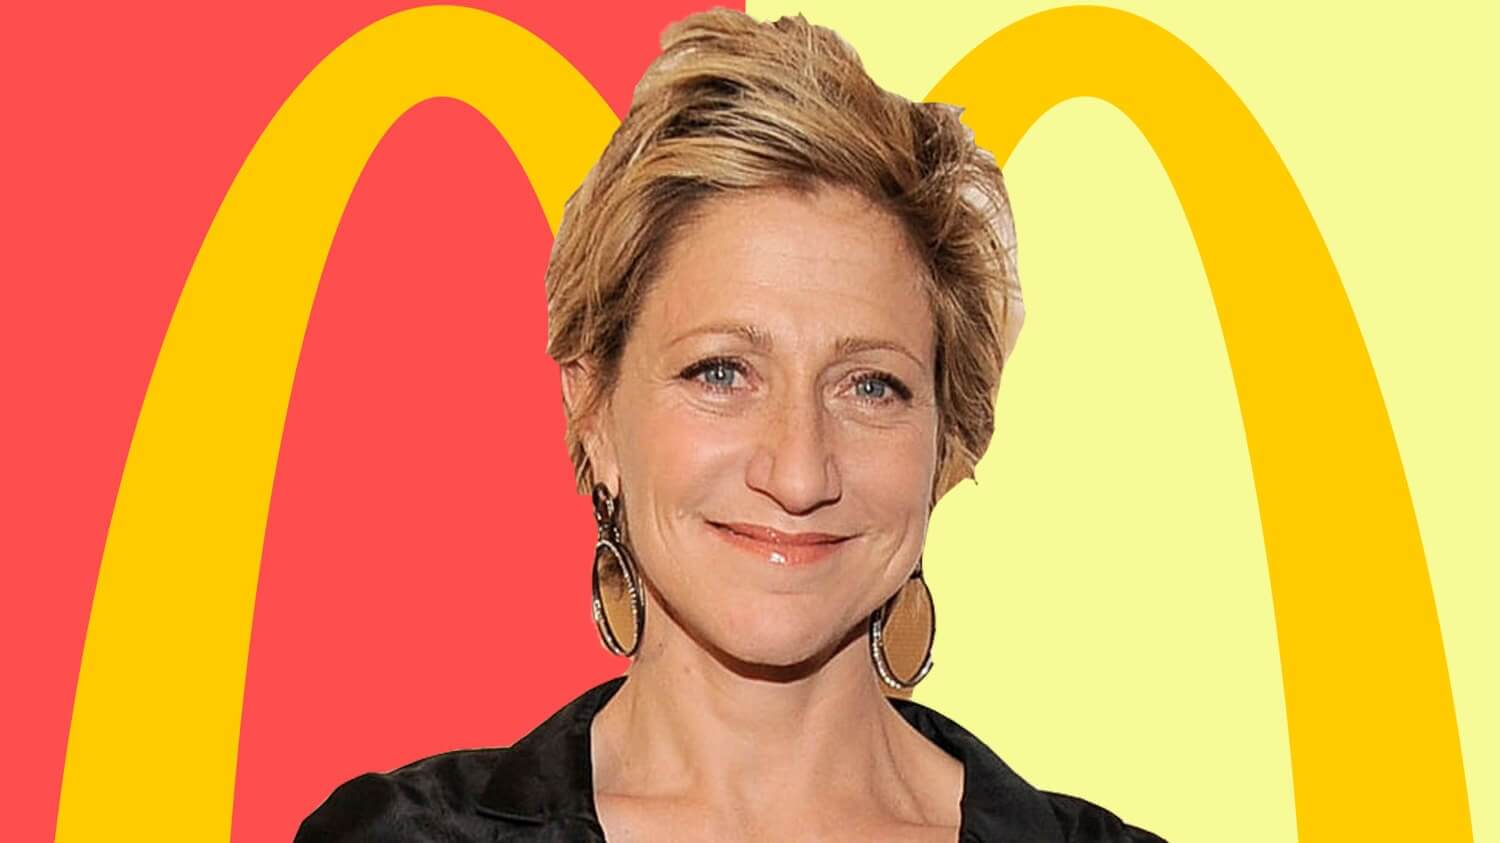 Sopranos Star Edie Falco Tells McDonald's to Treat Animals Better and Add Vegan Options